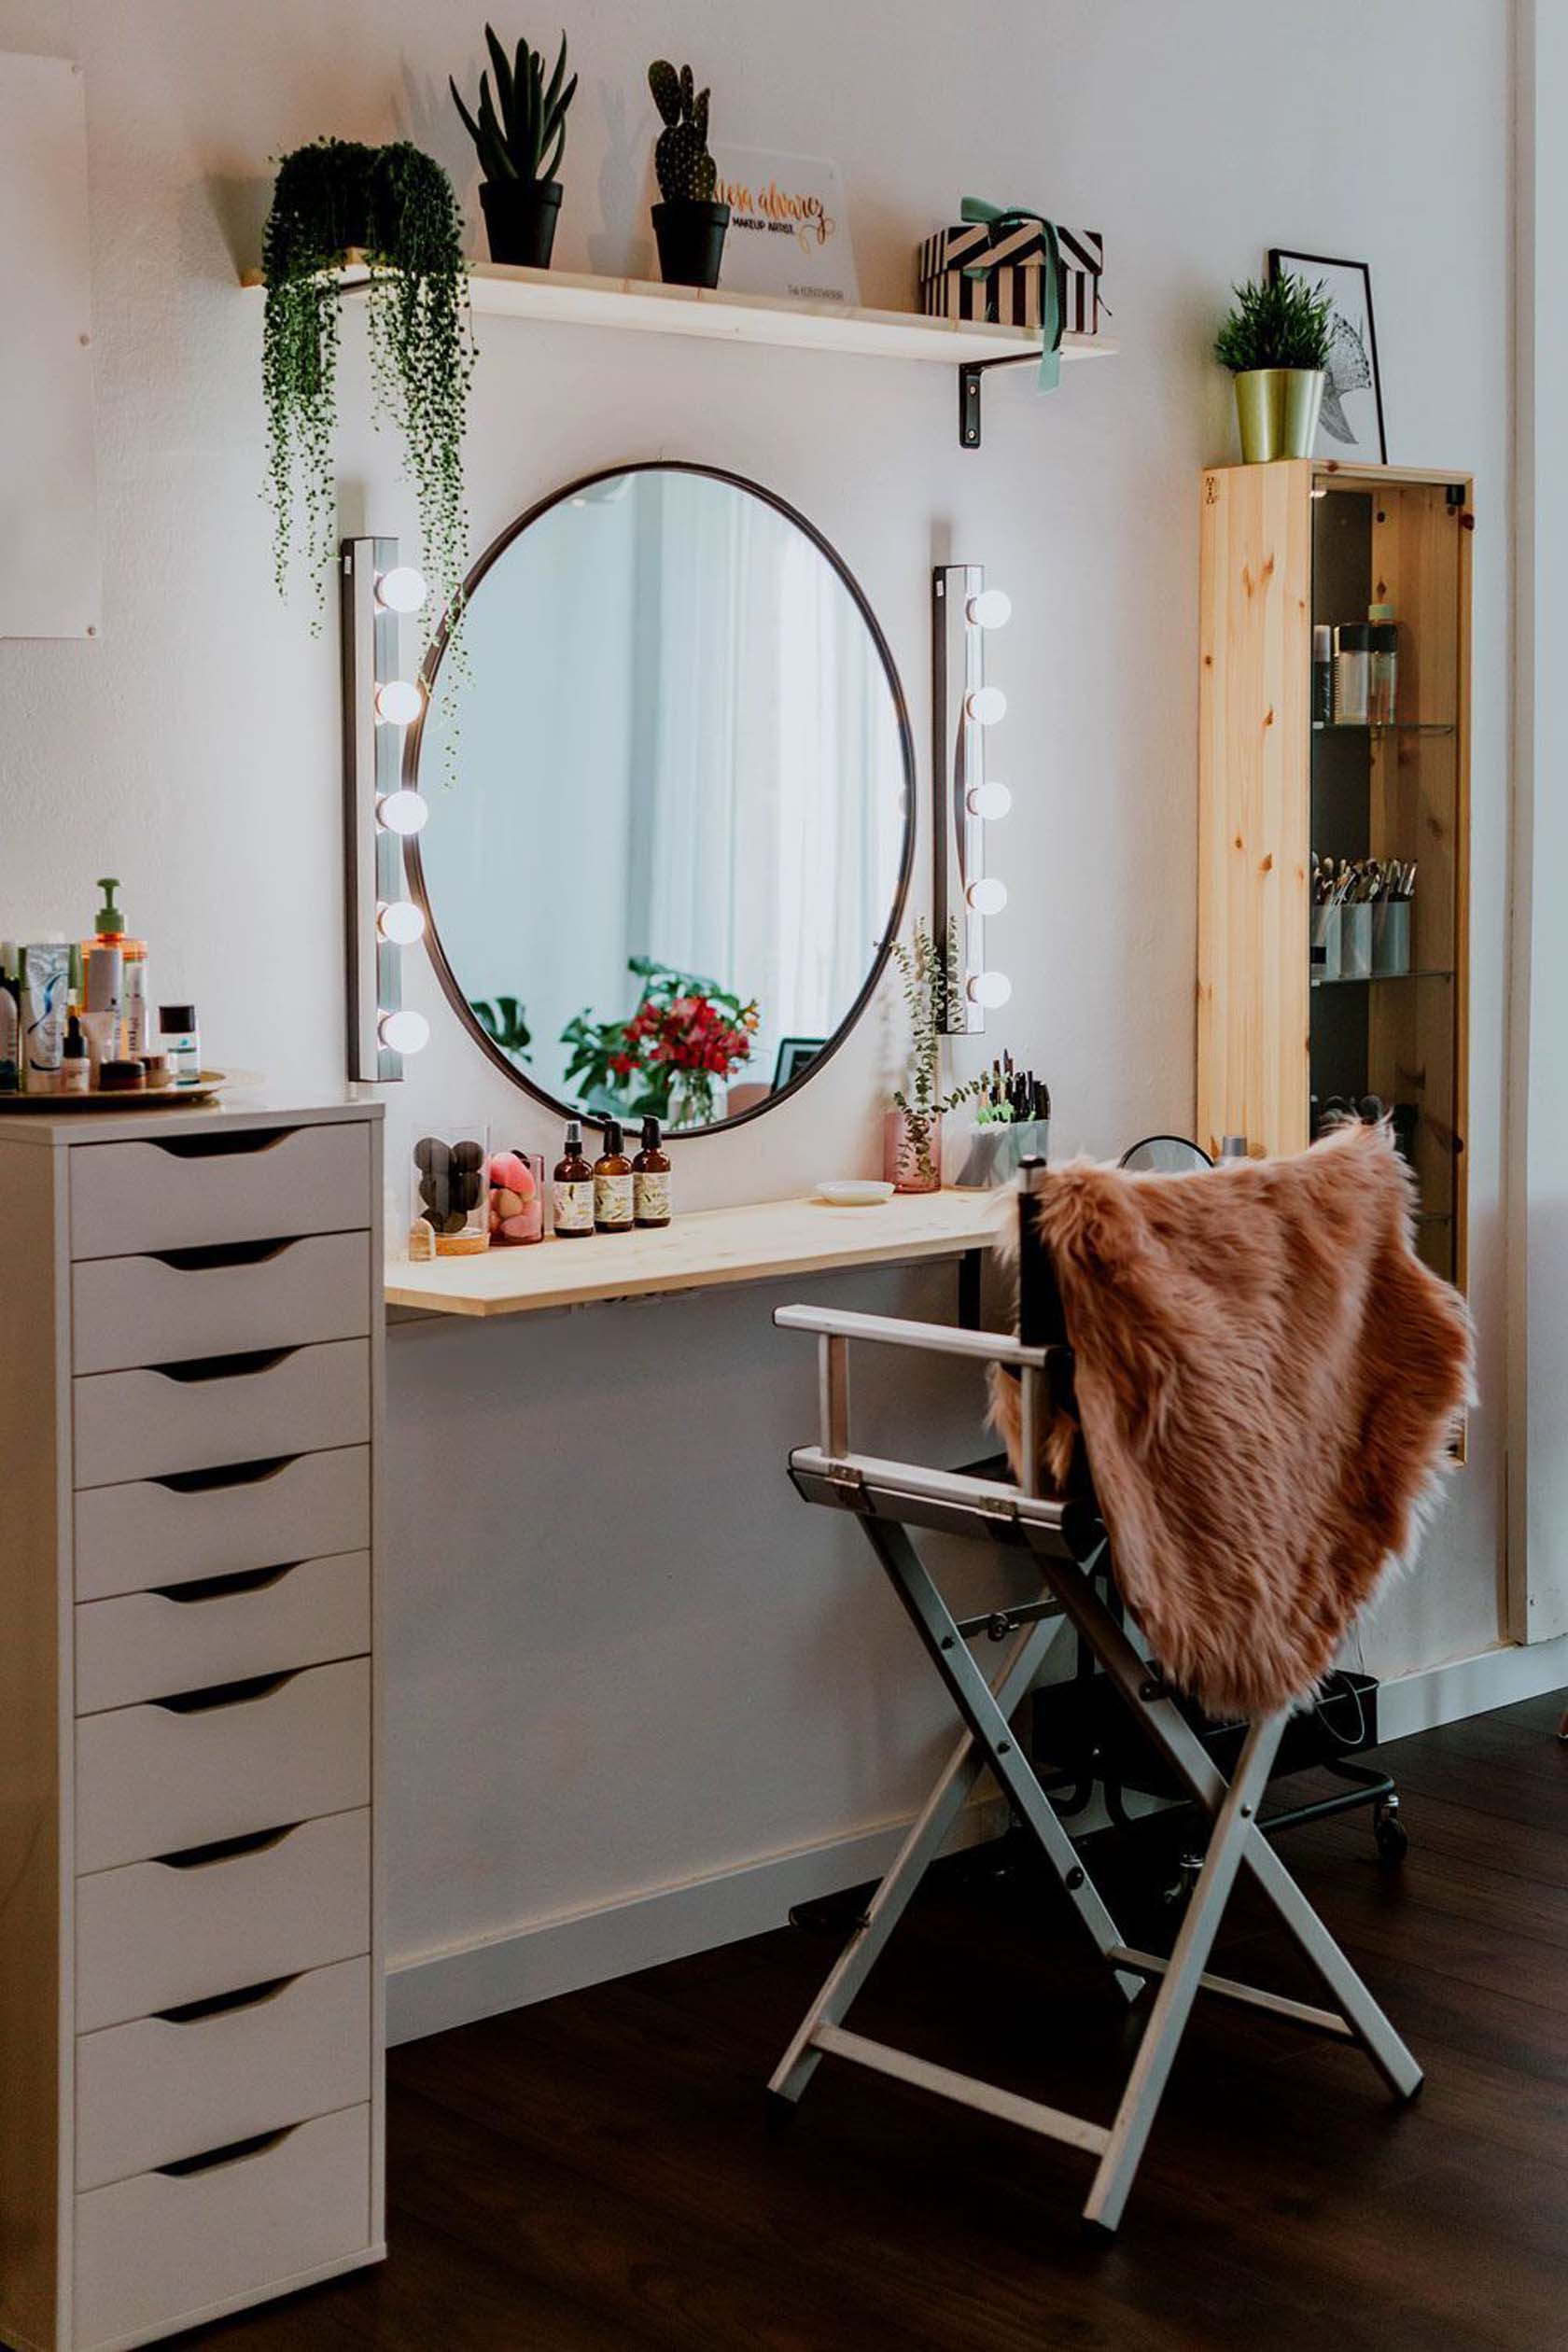 Keep Only The Reachable Things In Front Of The Dressing Table